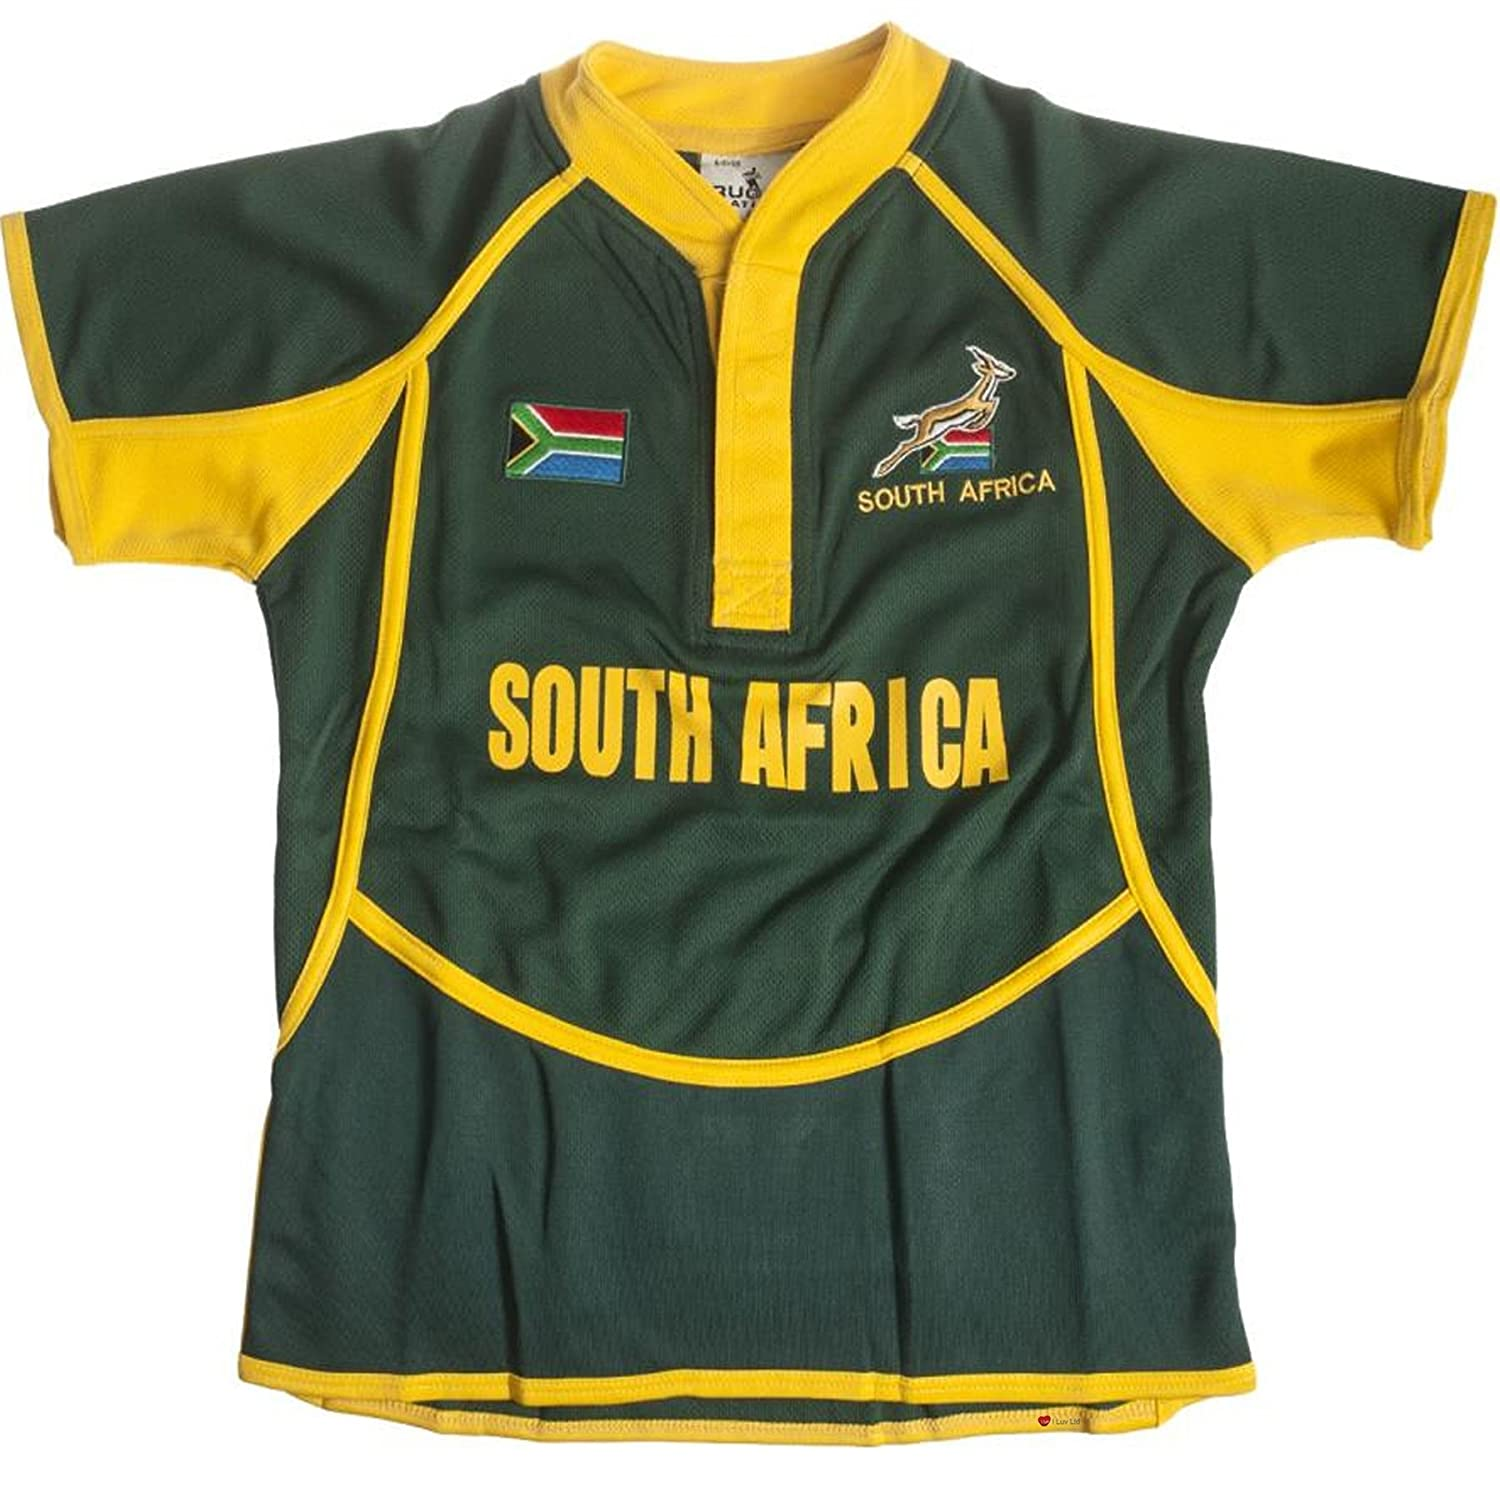 iLuv Kids Cool Dry Style Rugby Shirt in South Africa Colours Size 7-8 Years I Luv Ltd